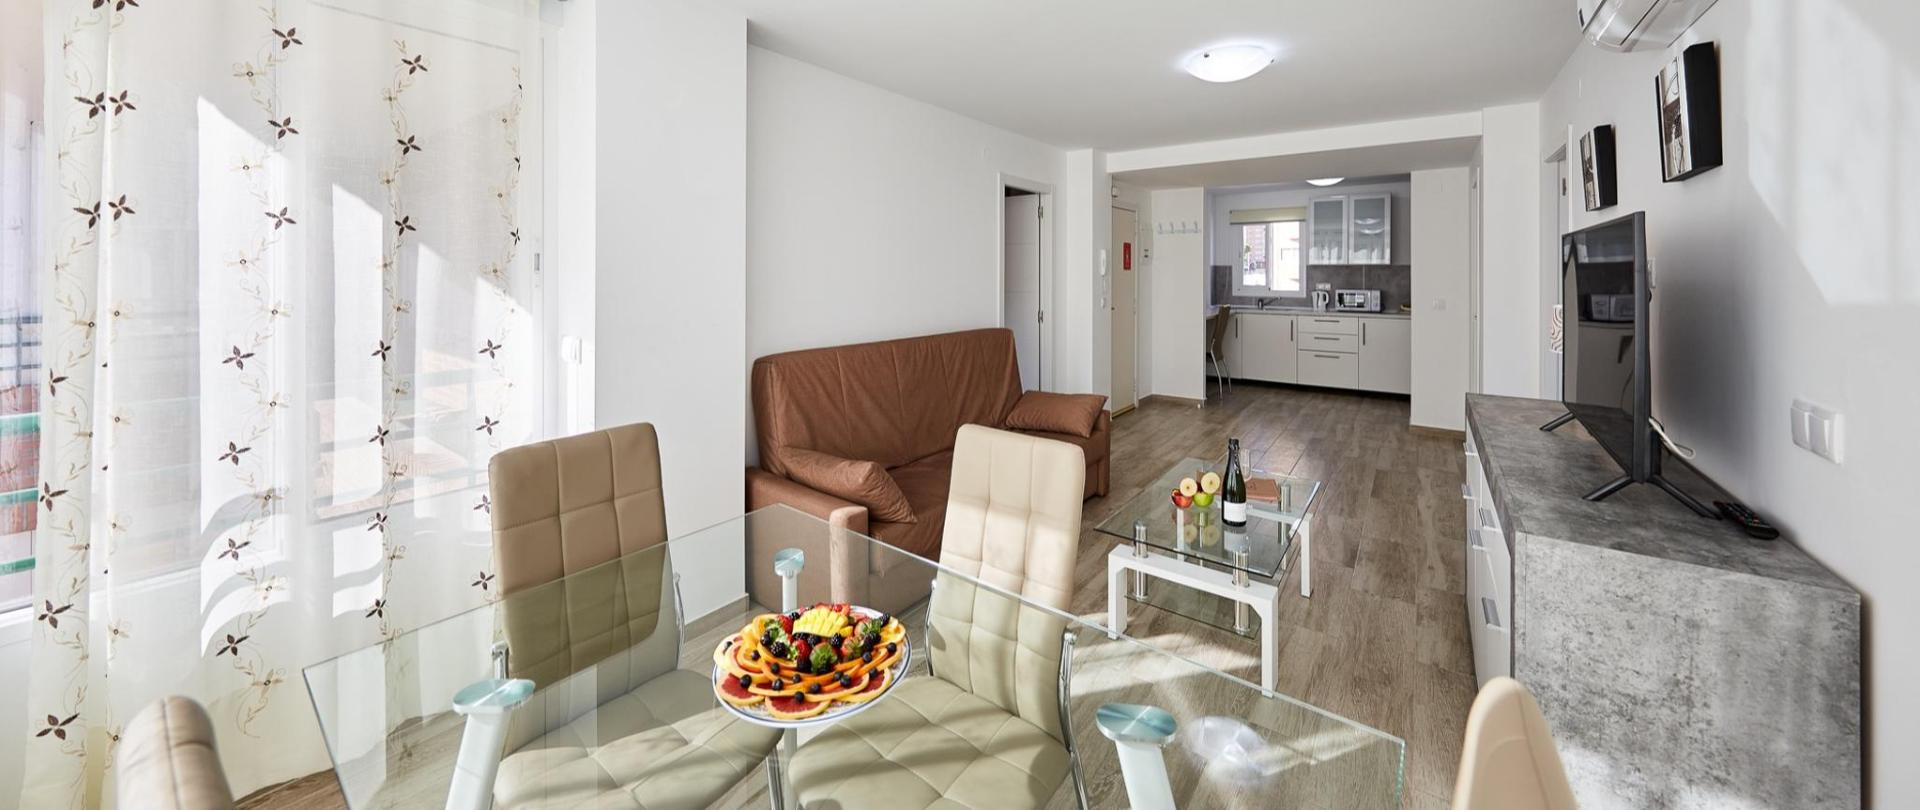 Sonrisa Apartments - Deluxe Apartments11.jpg